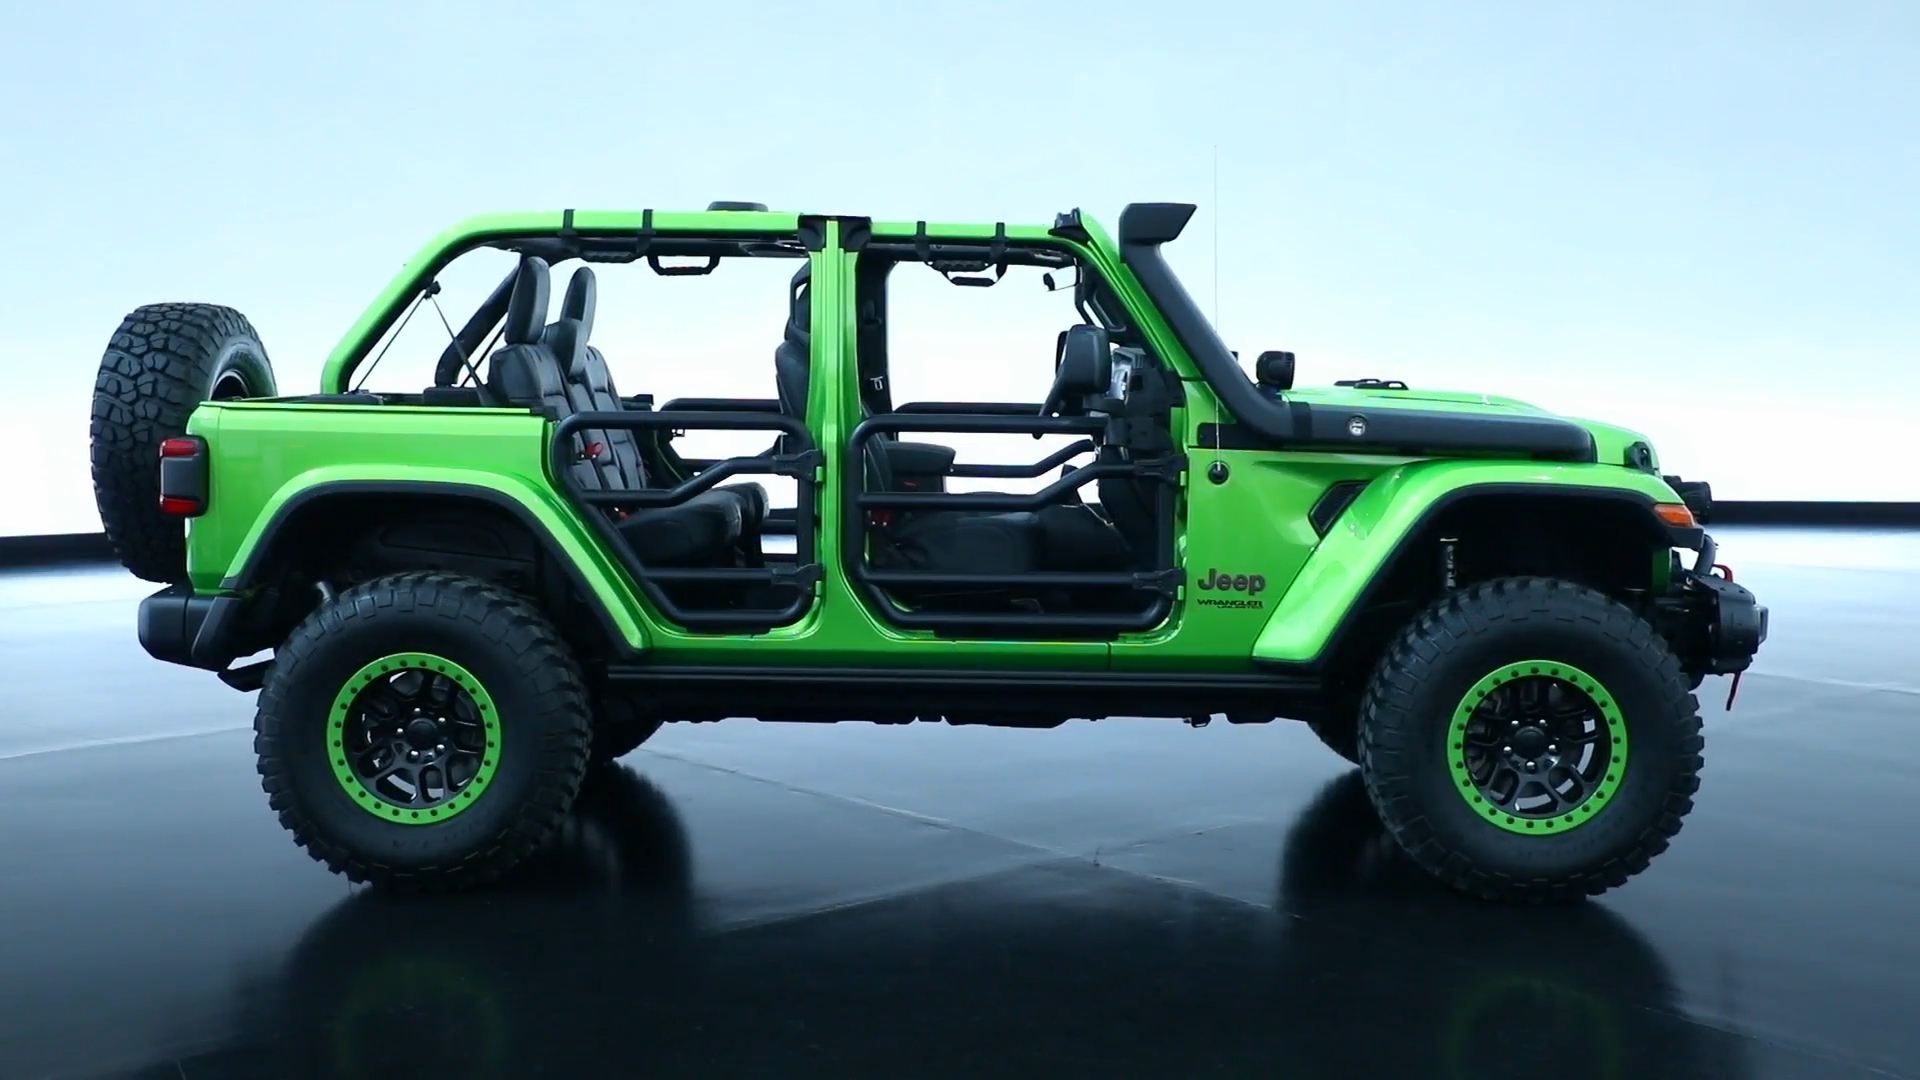 Mopar Premieres Customized 2018 Jeep Wrangler Vehicles at LA Auto Show en